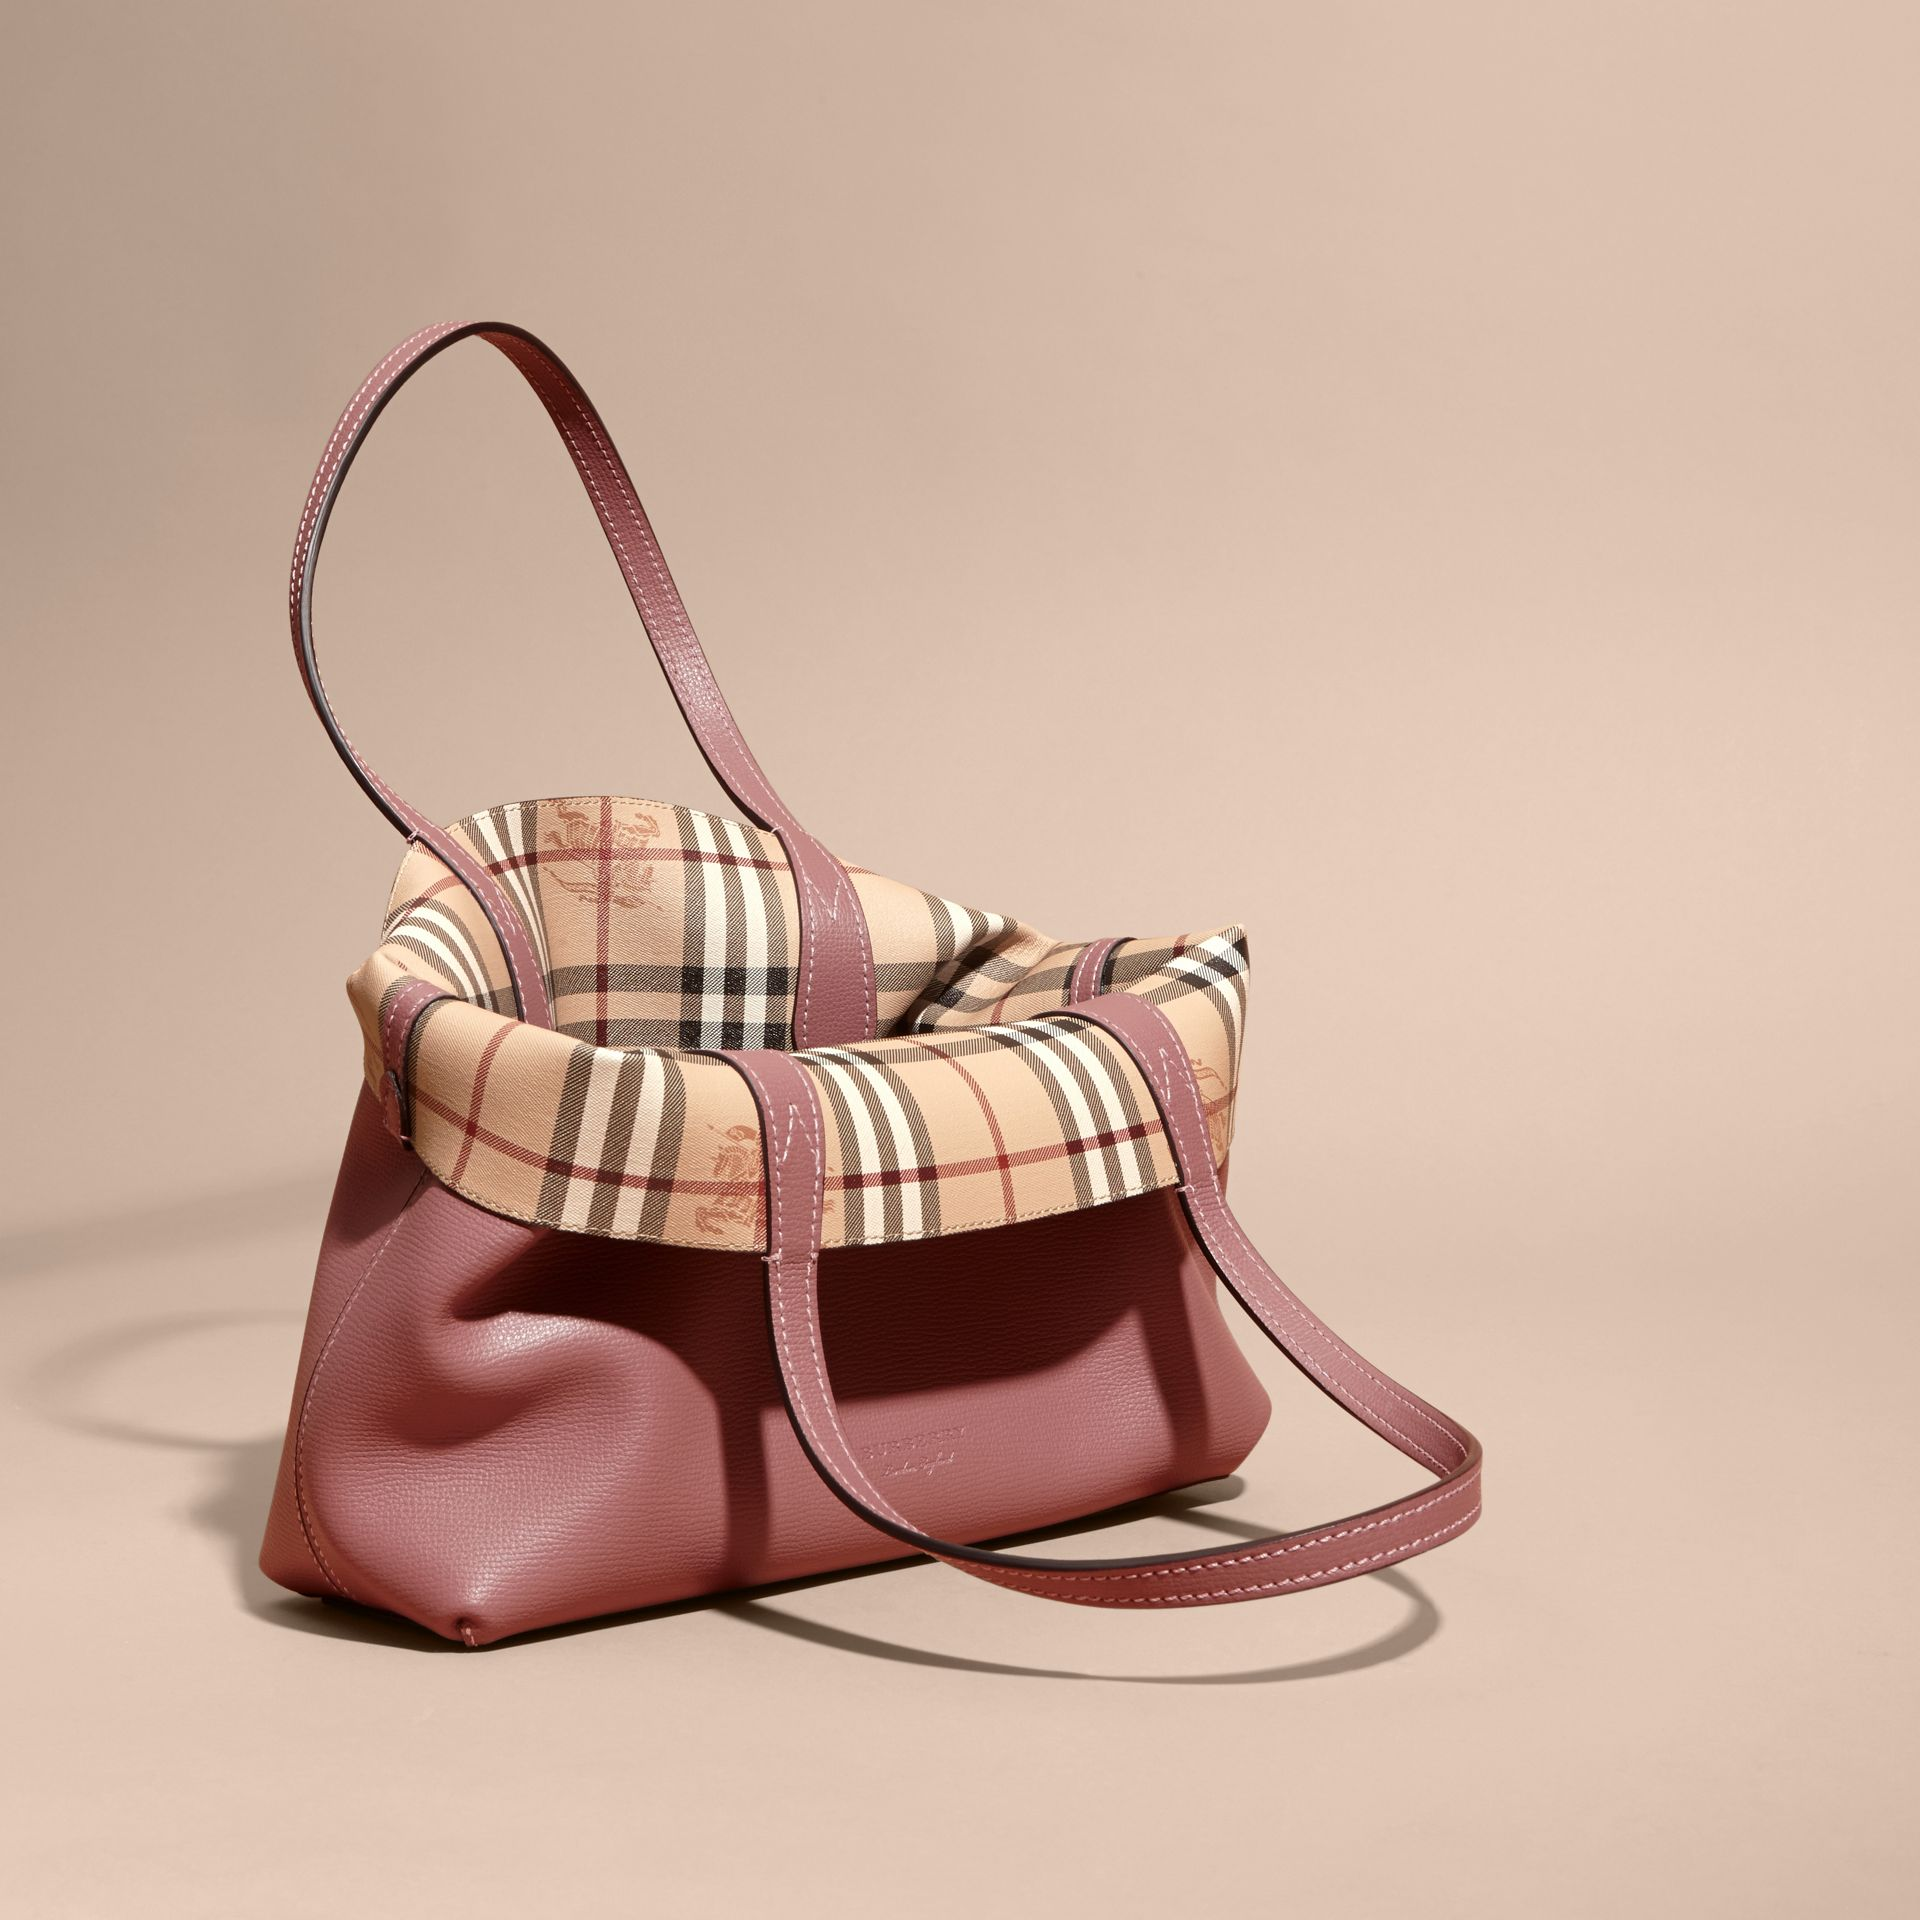 The Small Reversible Tote in Haymarket Check and Leather in Light Elderberry - Women | Burberry - gallery image 5